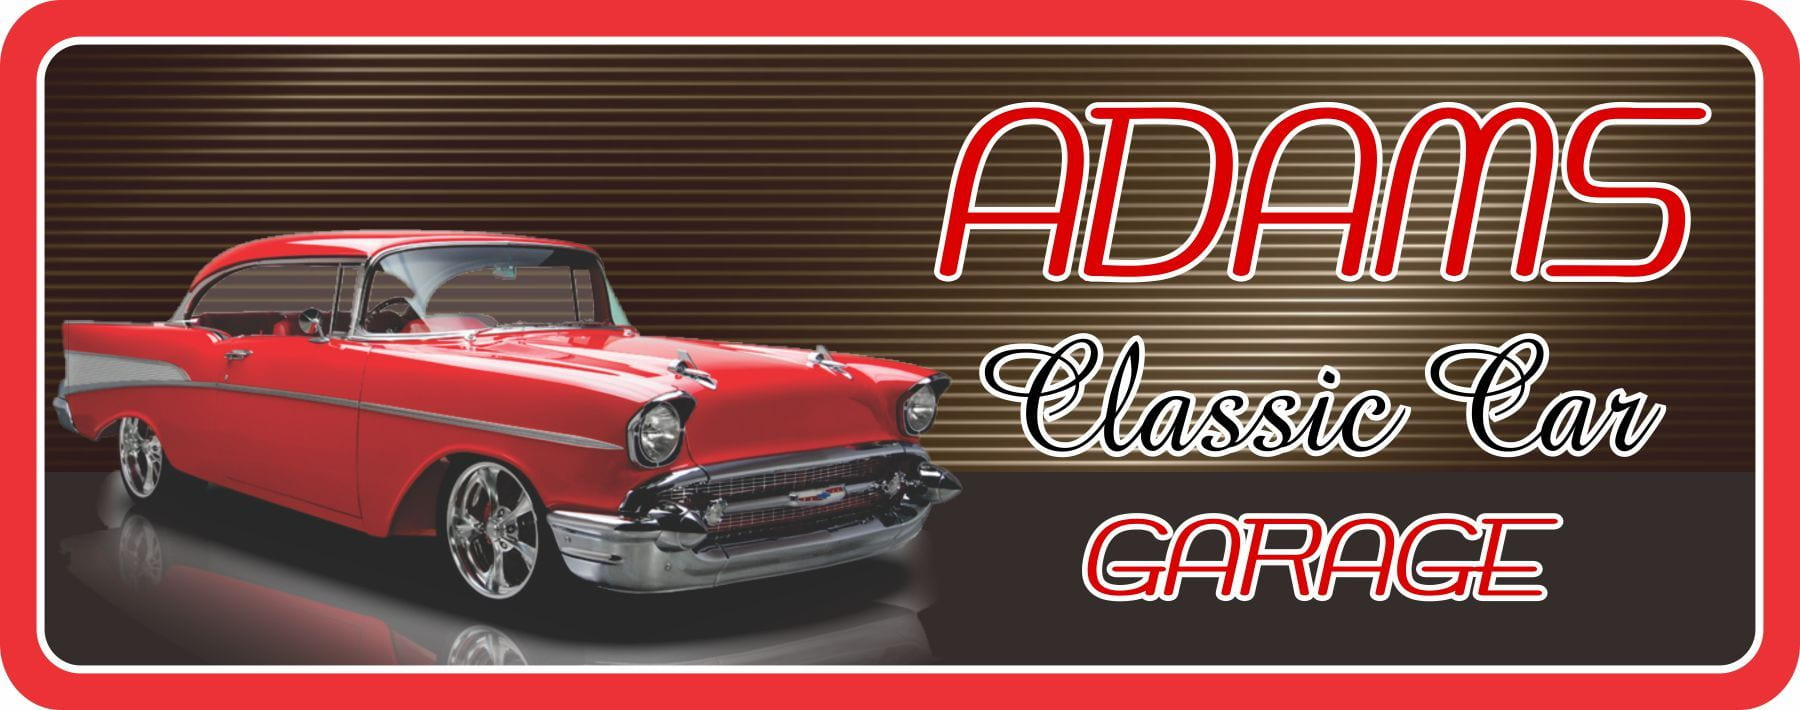 Red Car Sign Personalized Signs Fun Factory 1957 Chevy Bel Air Custom Classic With Garage Scene And Vintage Font